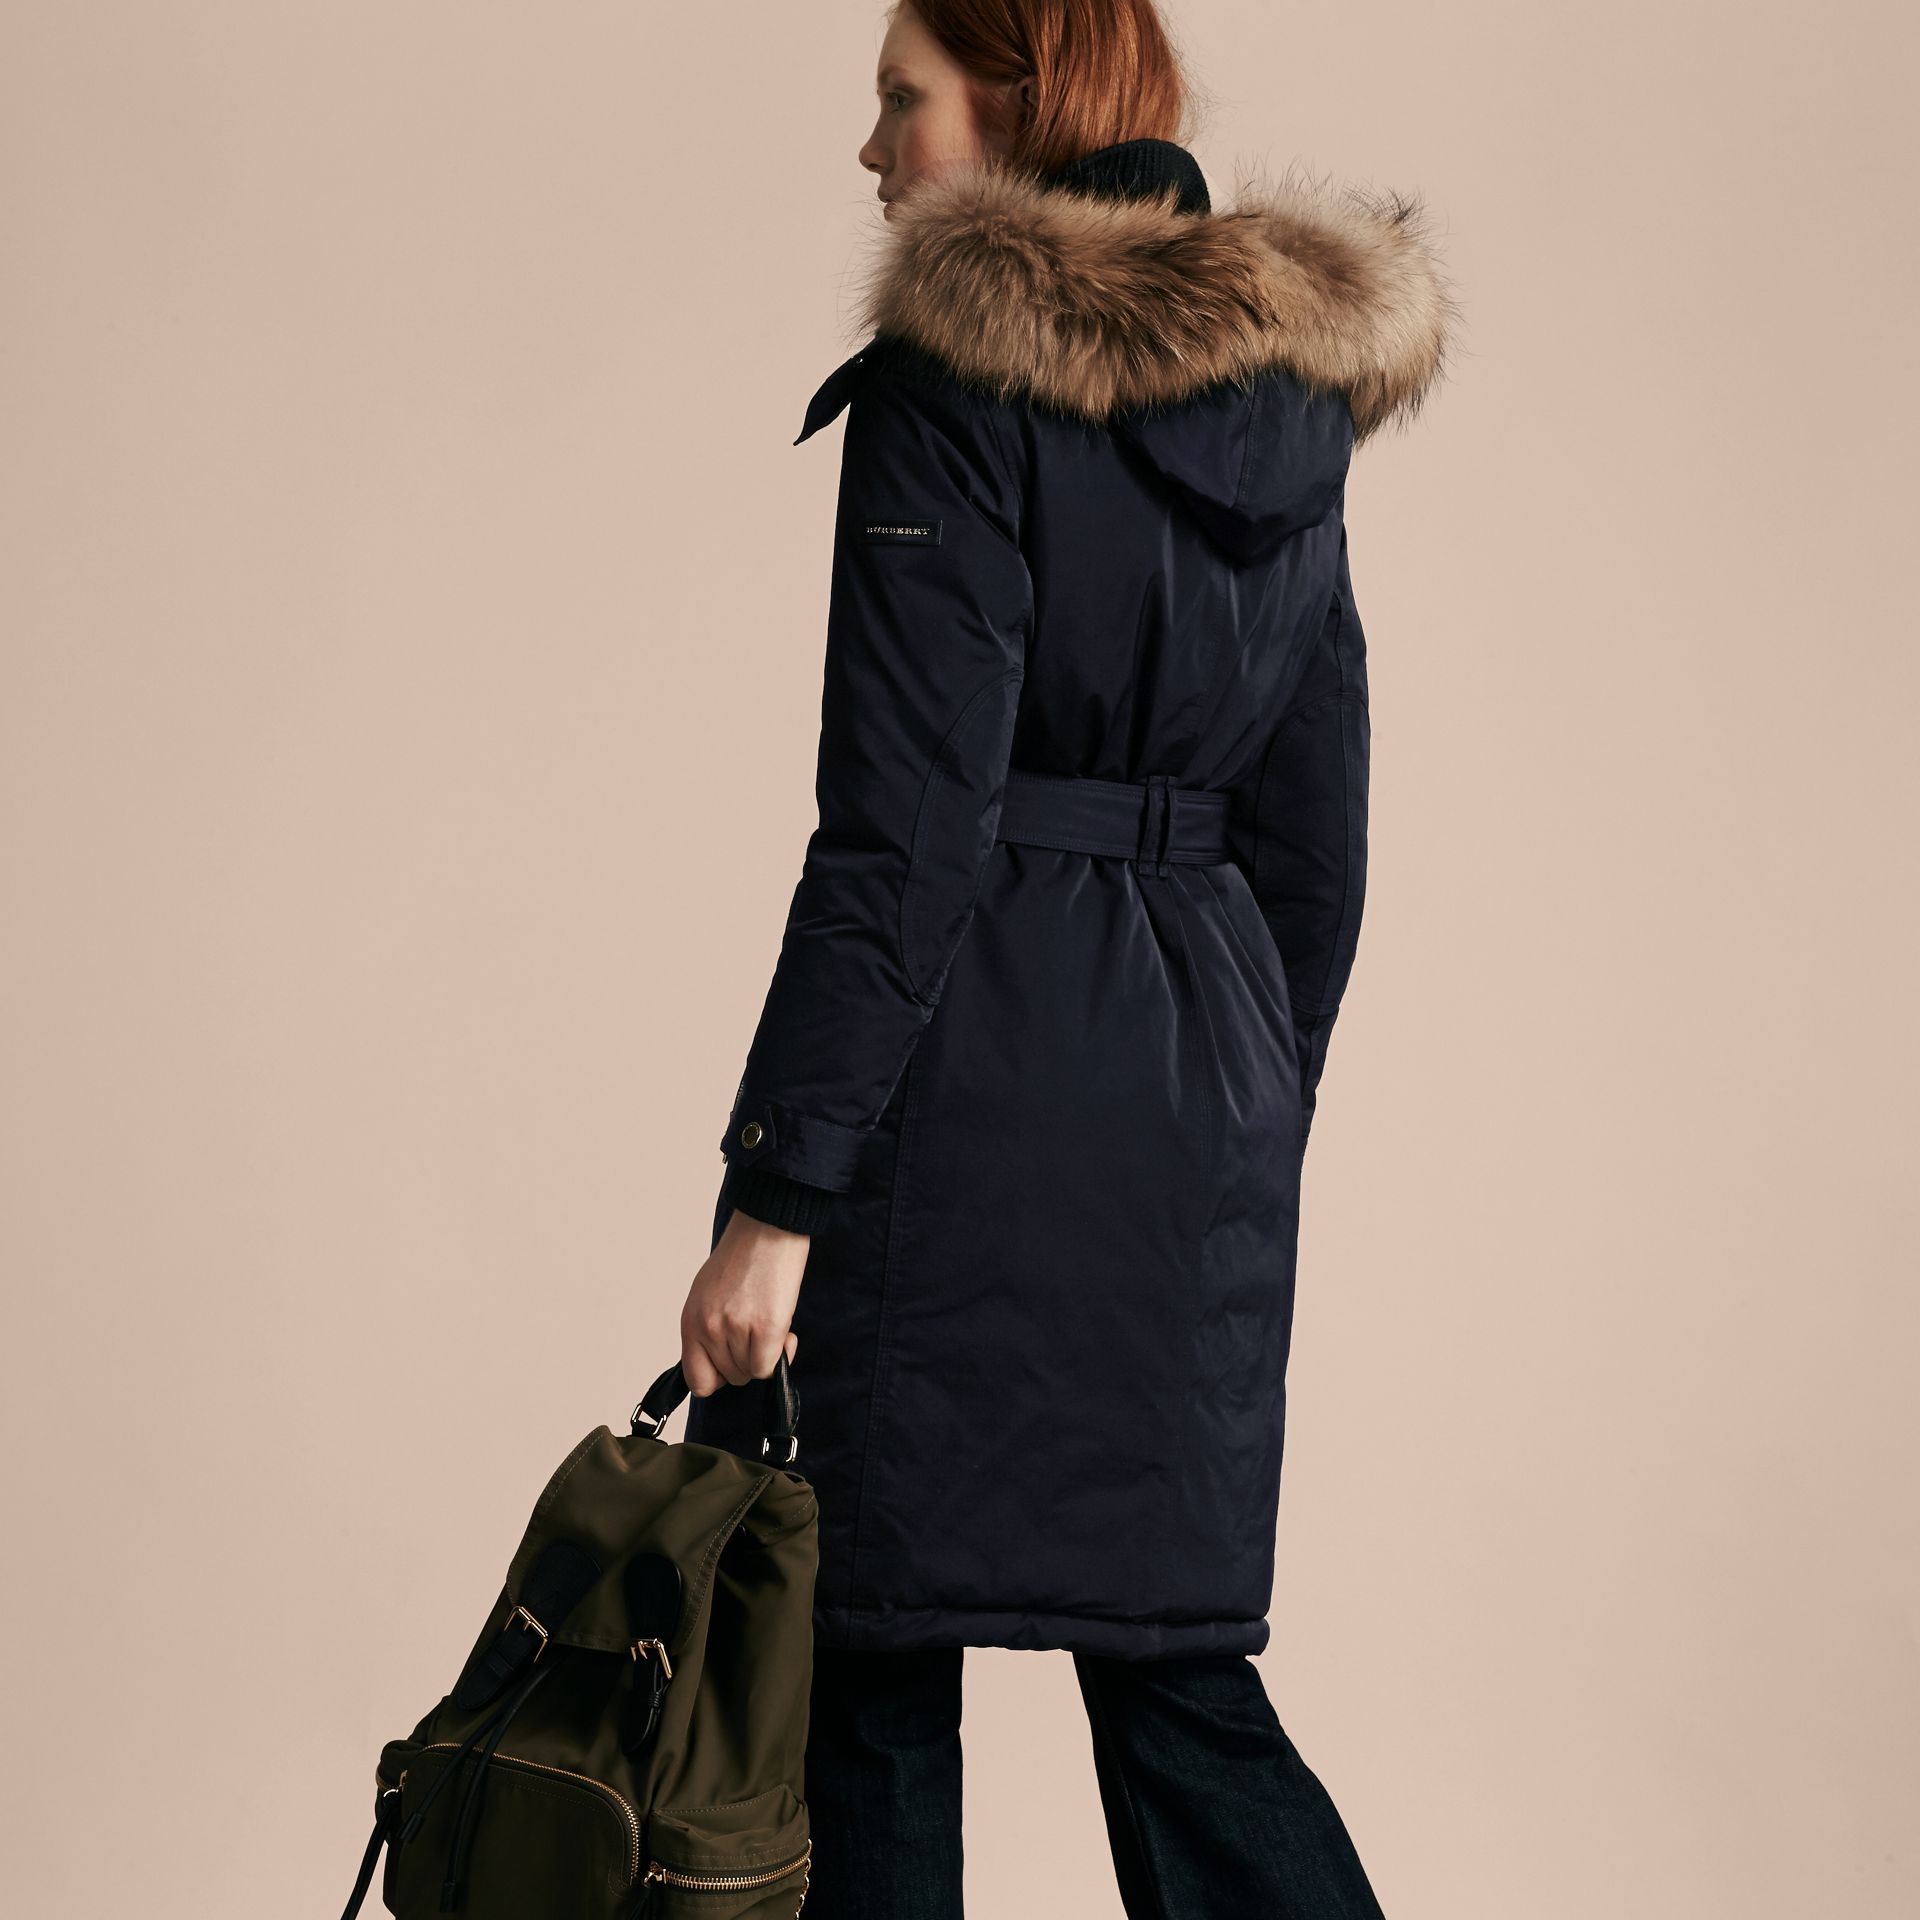 Down-filled Parka Coat with Detachable Fur Trim - gallery image 3